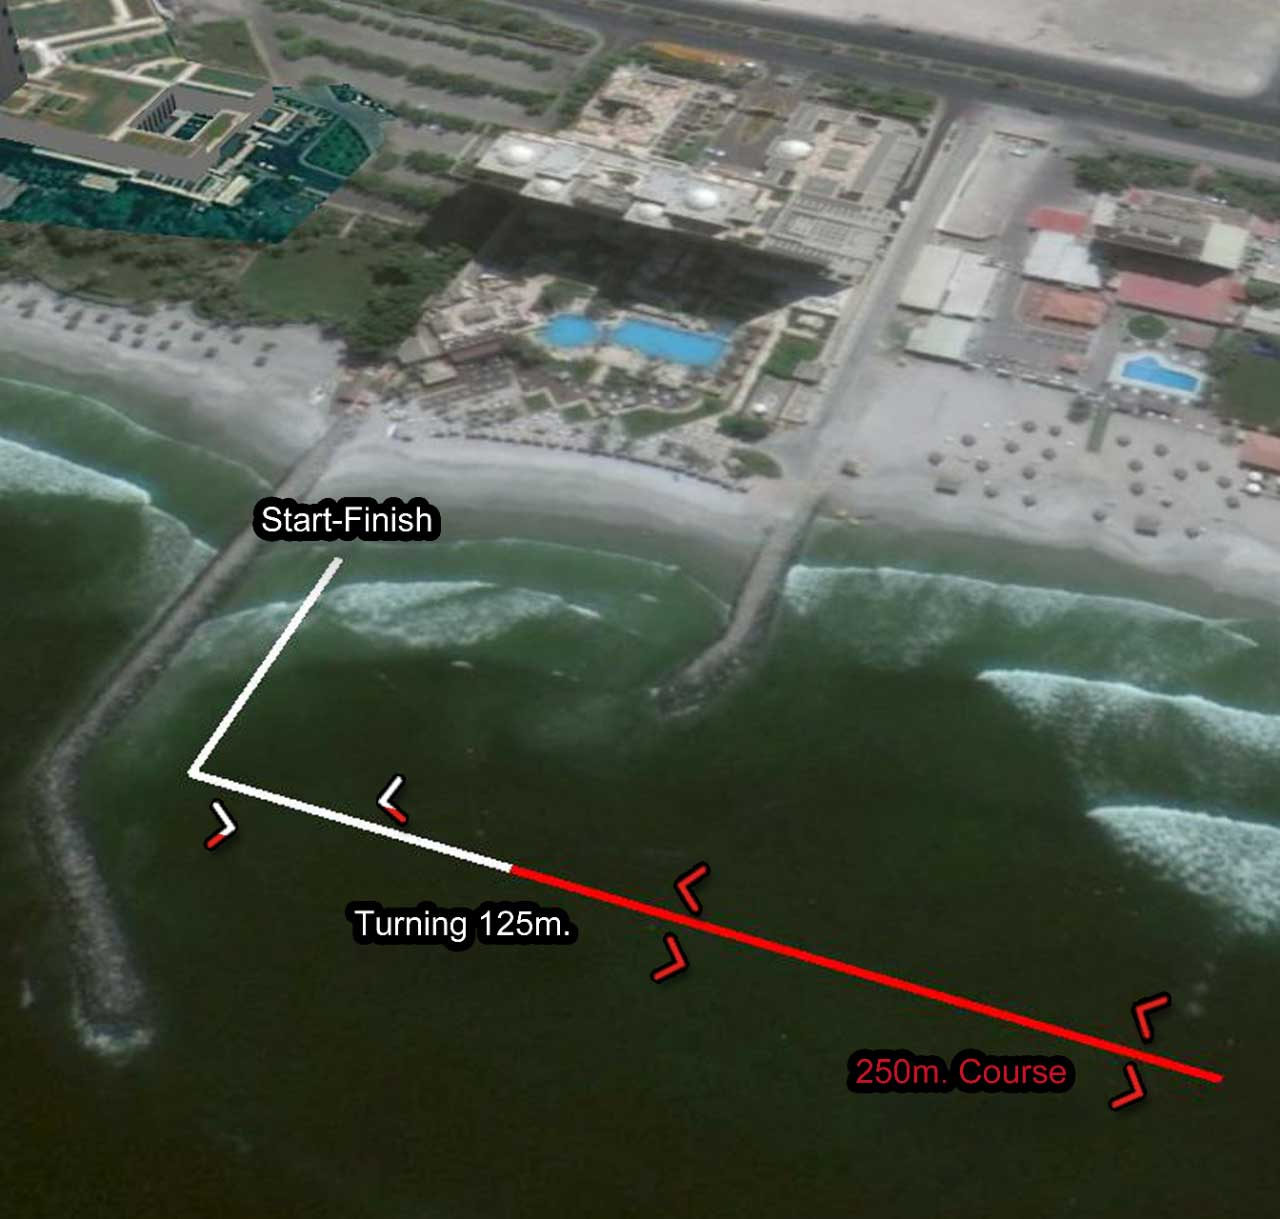 CourseMap_CS17_Ajman.jpg